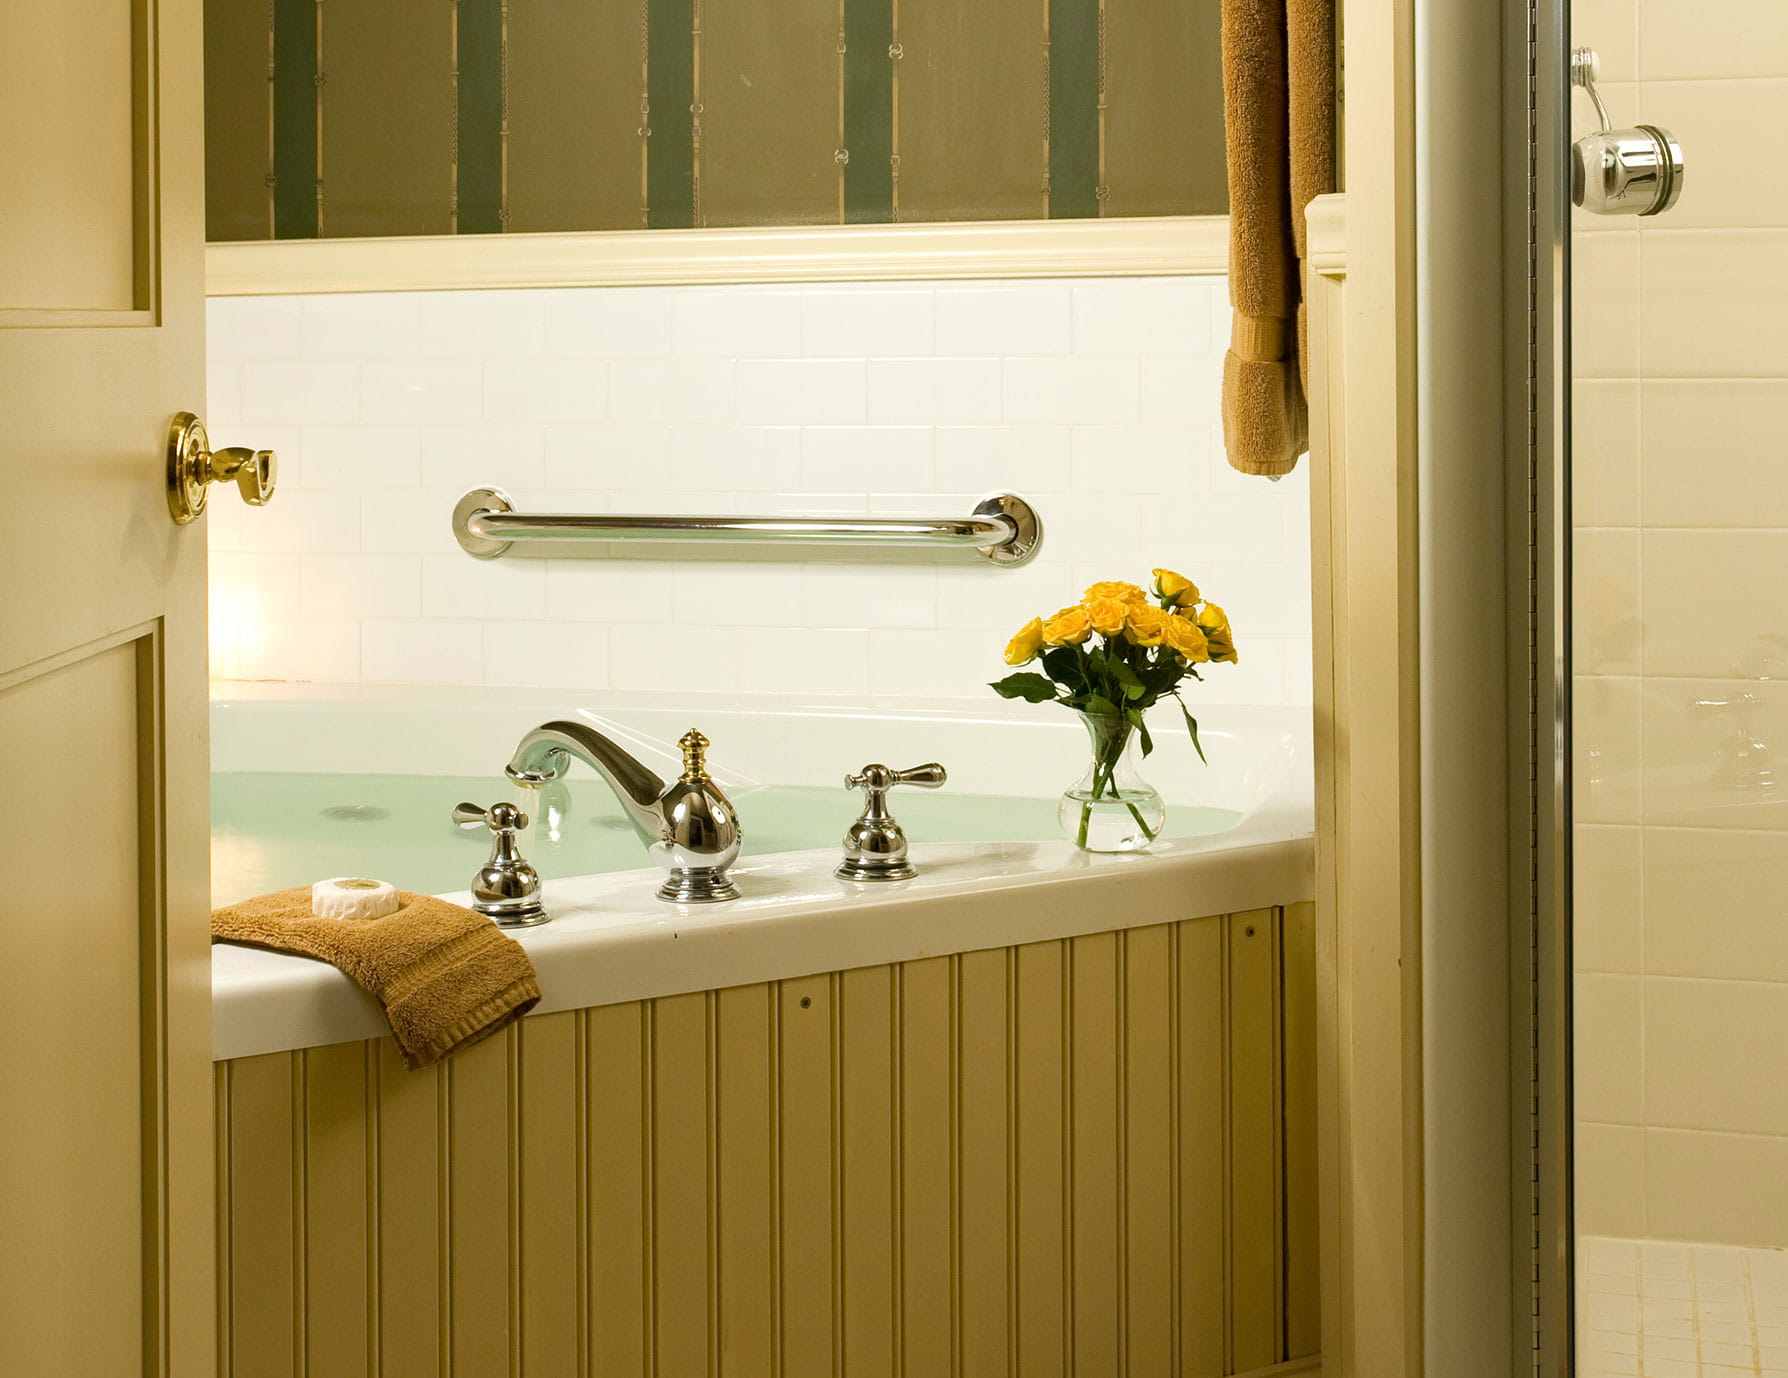 Bathtub with flower vase in Room 9